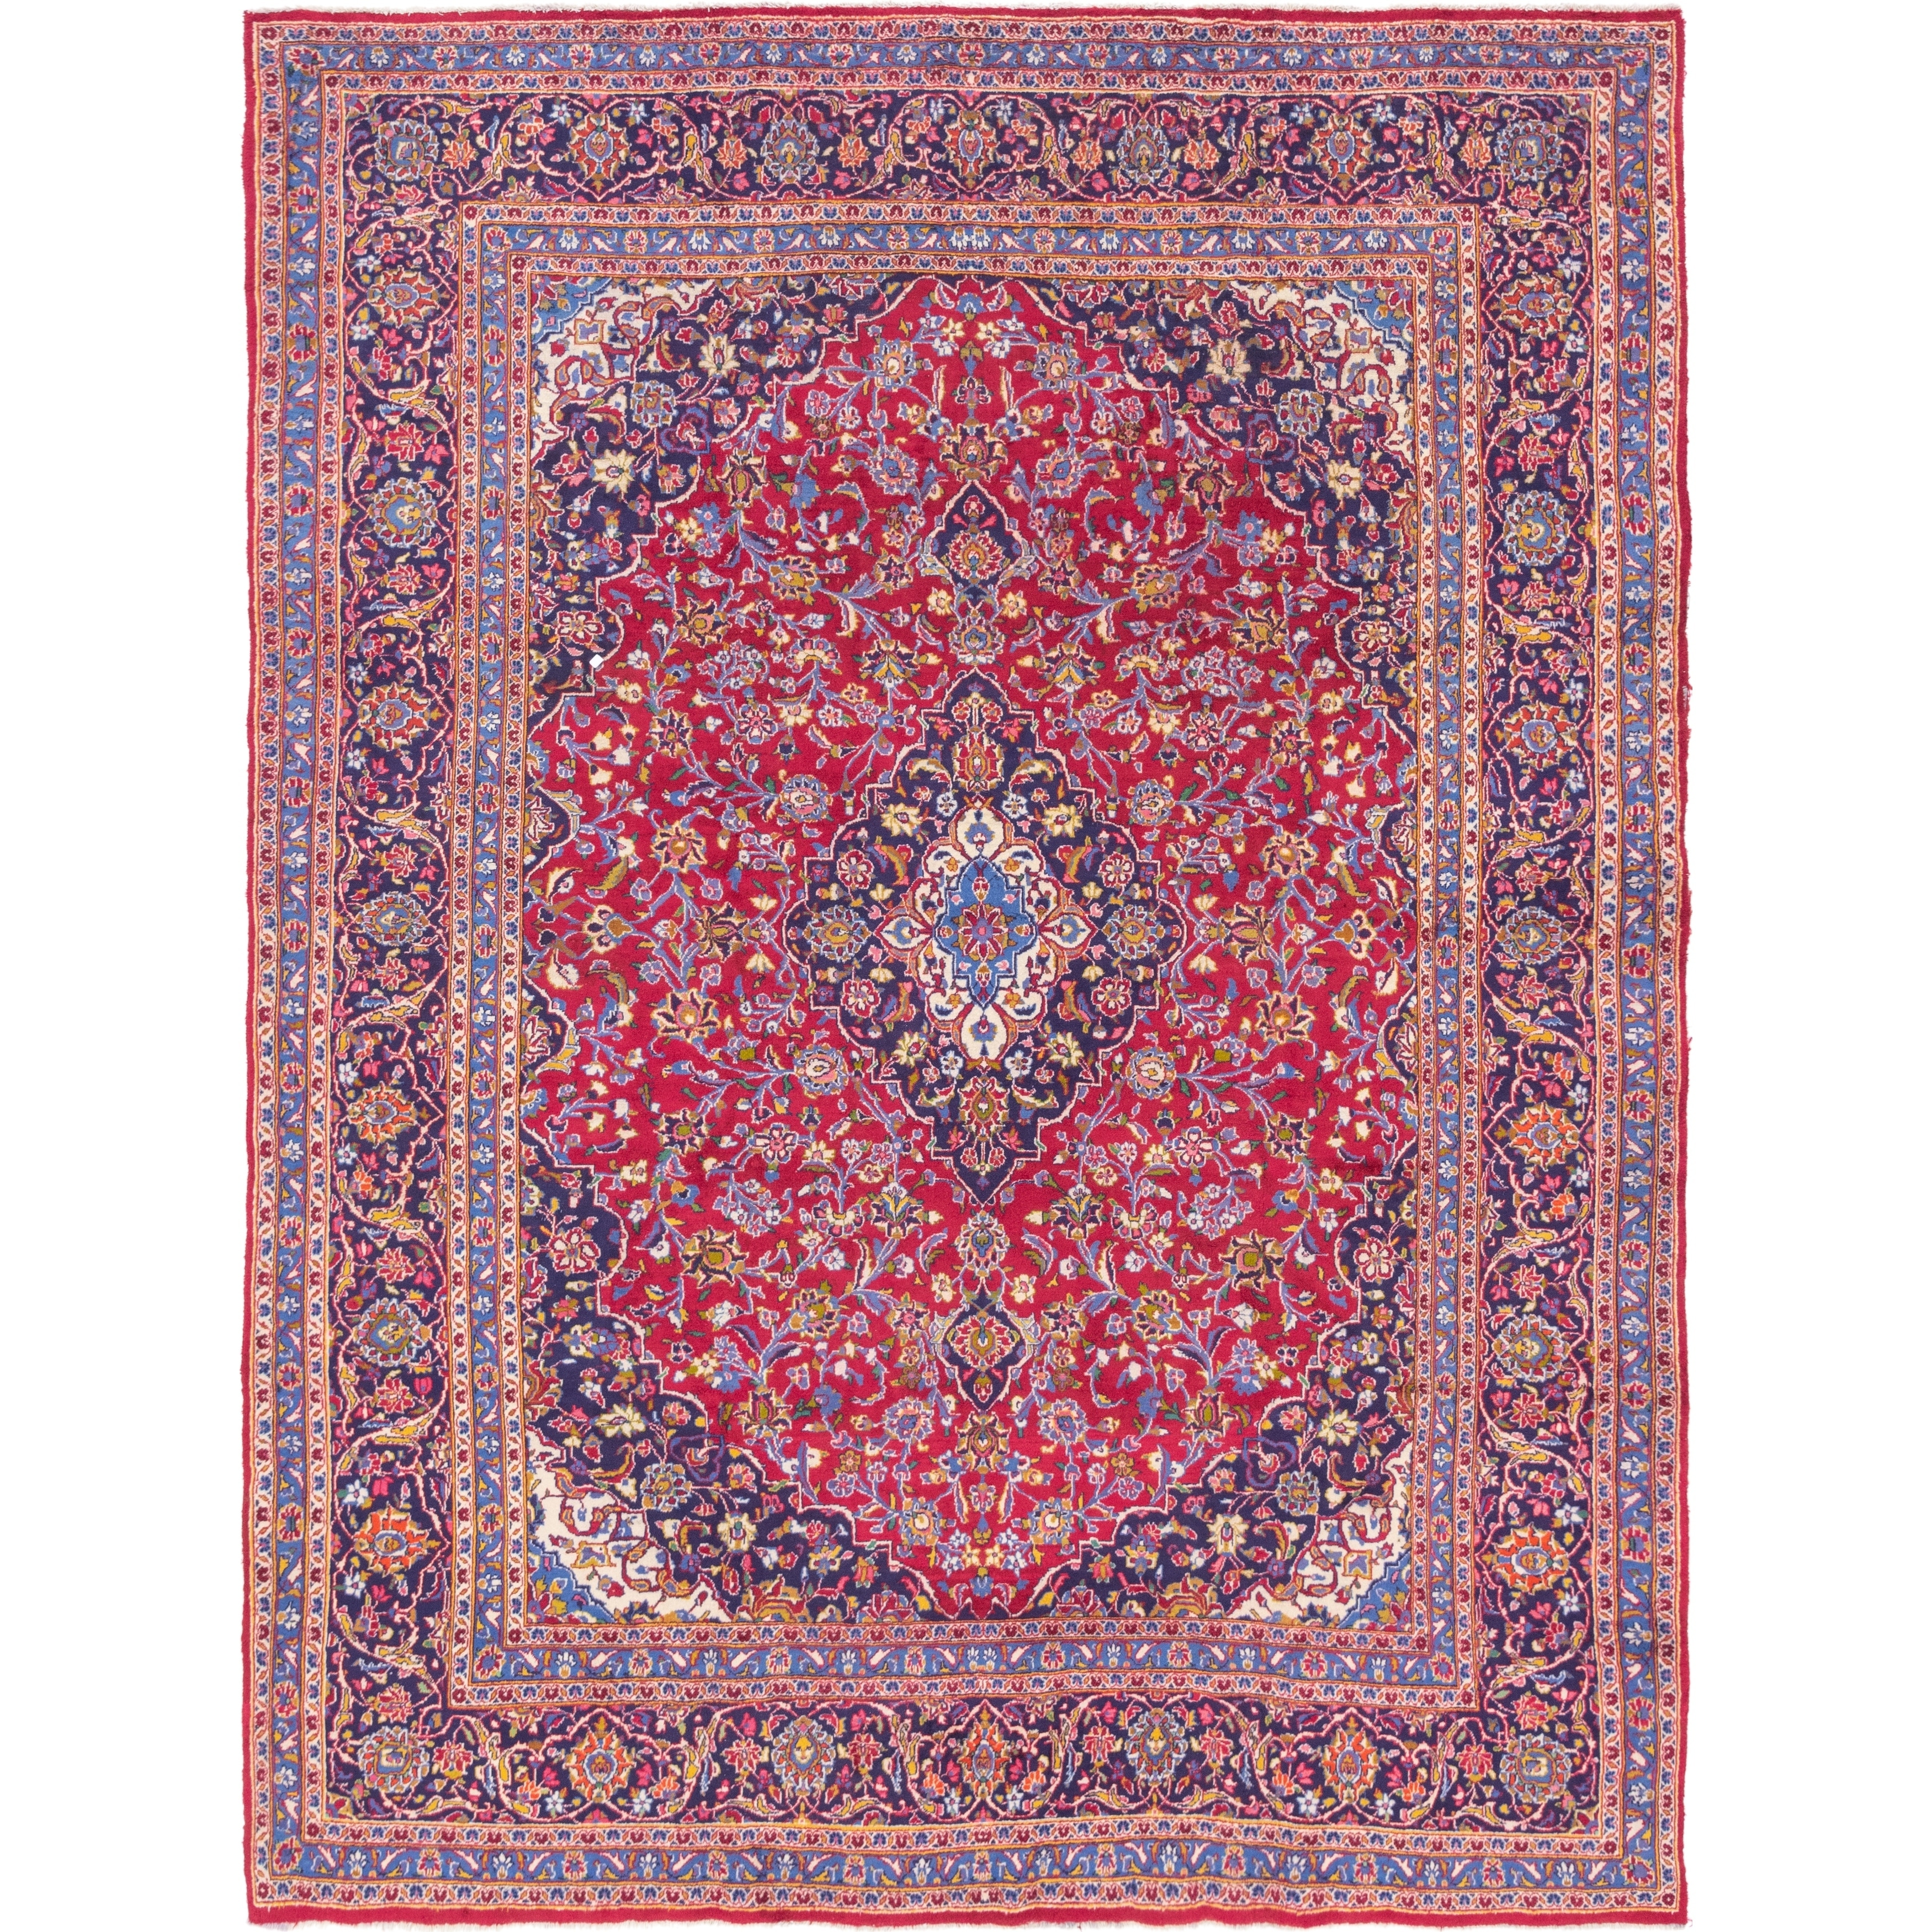 Hand Knotted Kashan Wool Area Rug - 9 6 x 12 6 (Red - 9 6 x 12 6)